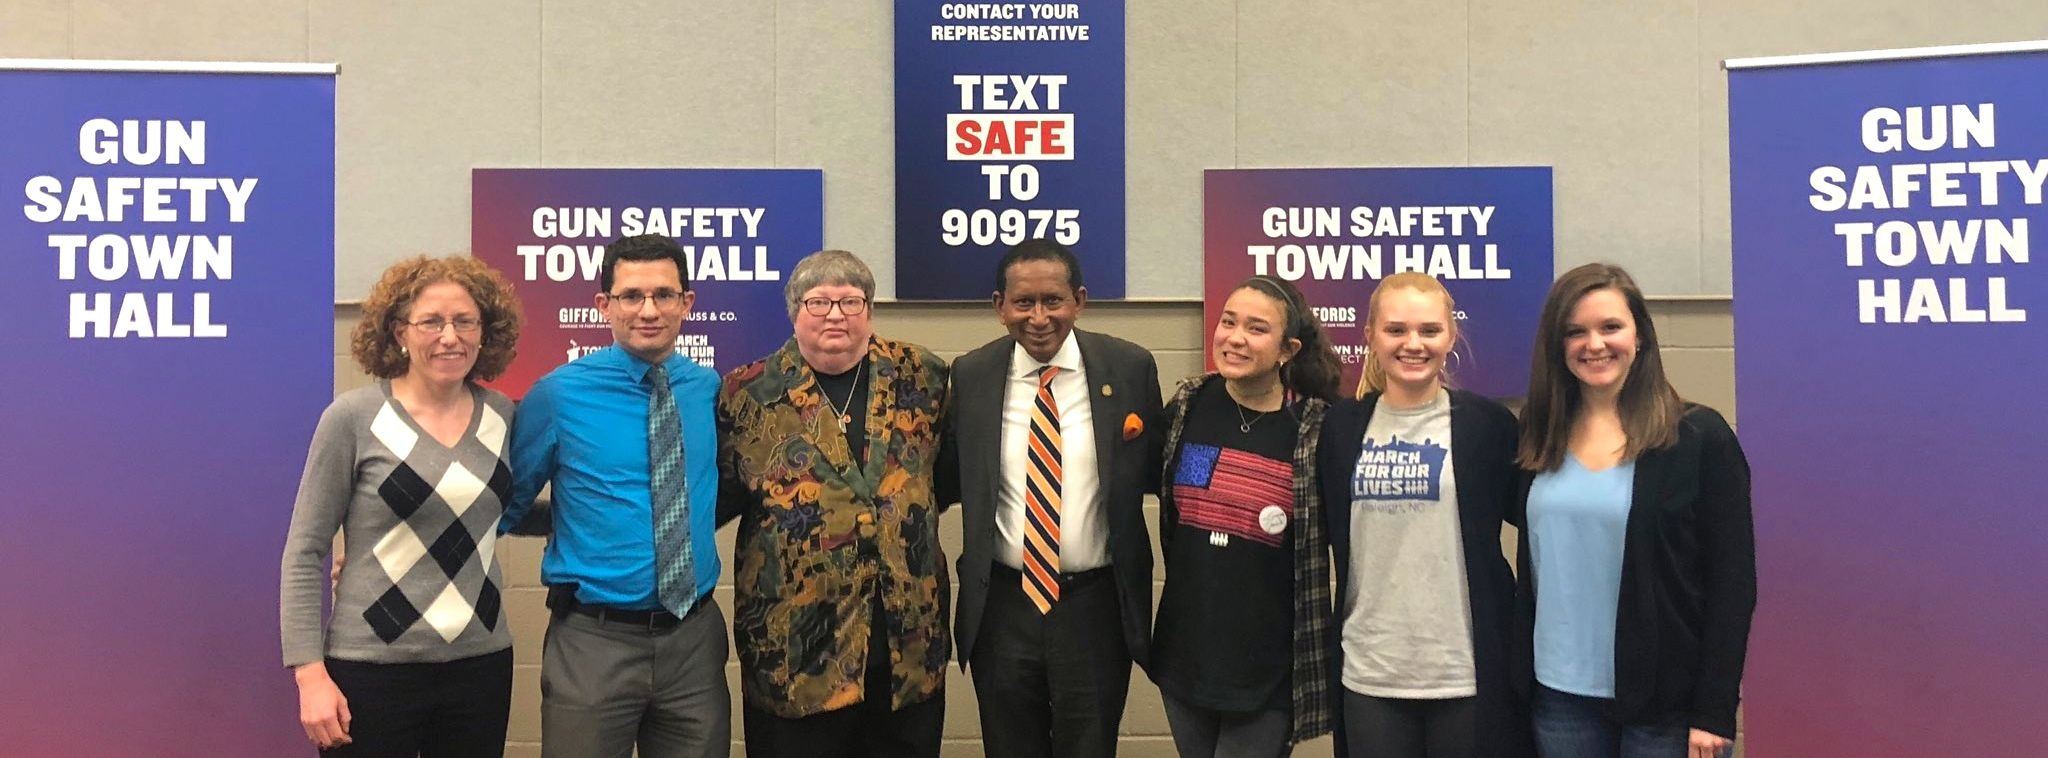 Rebecca Ceartas of North Carolinians Against Gun Violence, Dr. Brian Eichner of the American Academy of Pediatrics, gun violence survivor Kim Yaman, State Senator and gun violence survivor Floyd McKissick, Lauren Smith and Alyssa Morales of March For Our Lives Raleigh, and Katherine Phillips of Giffords discussed the importance of passing H.R. 8.